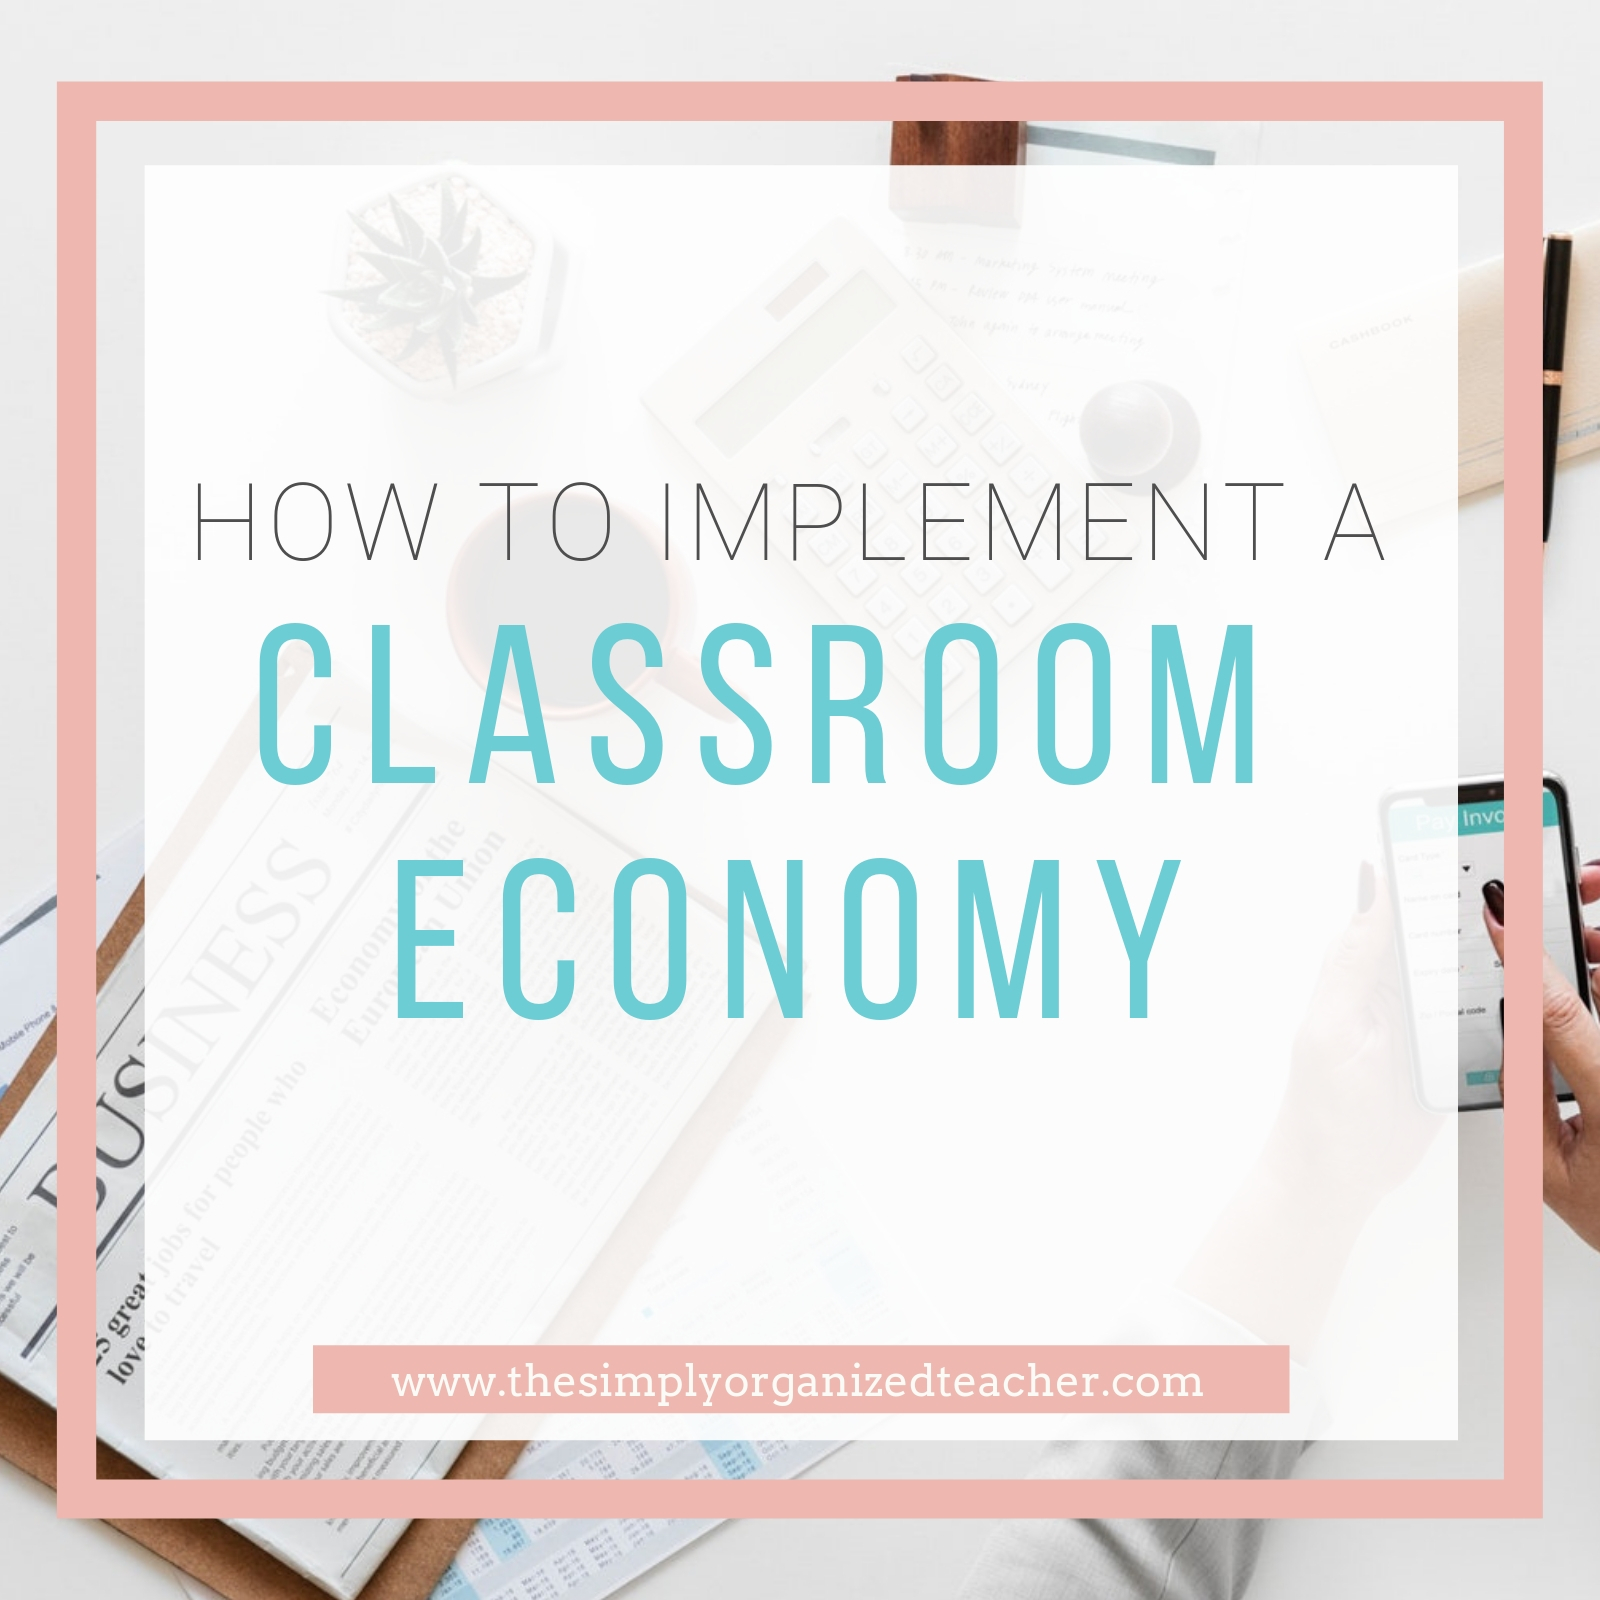 Looking for fun ways to engage your students in a positive behavior plan while teaching them at the same time? A classroom economy is a great way to expose elementary students to personal financial literacy and manage behavior.